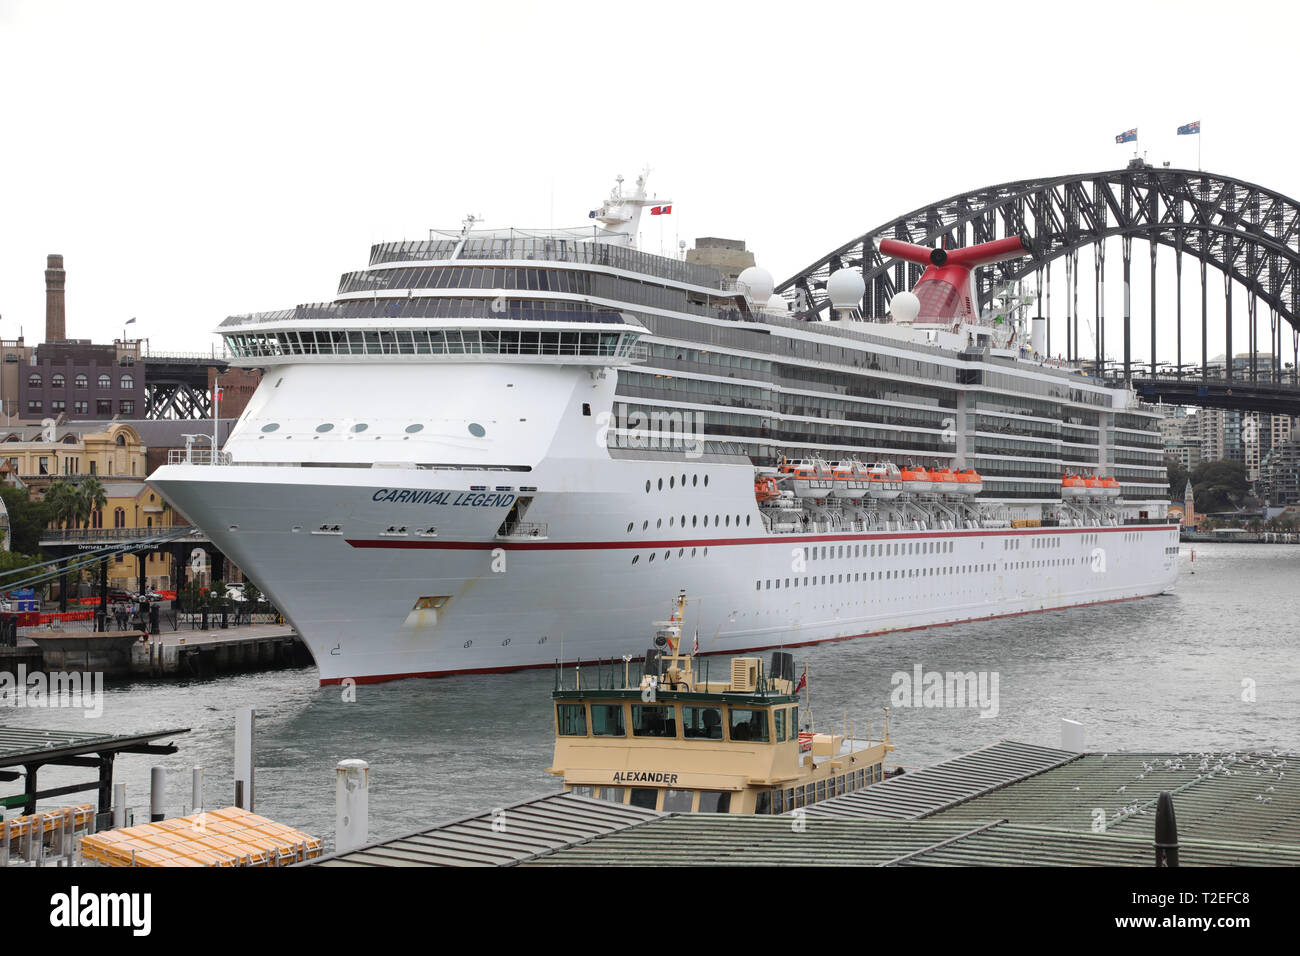 Carnival Legend cruise liner docked at the Overseas Passenger Terminal in Sydney, Australia. Stock Photo